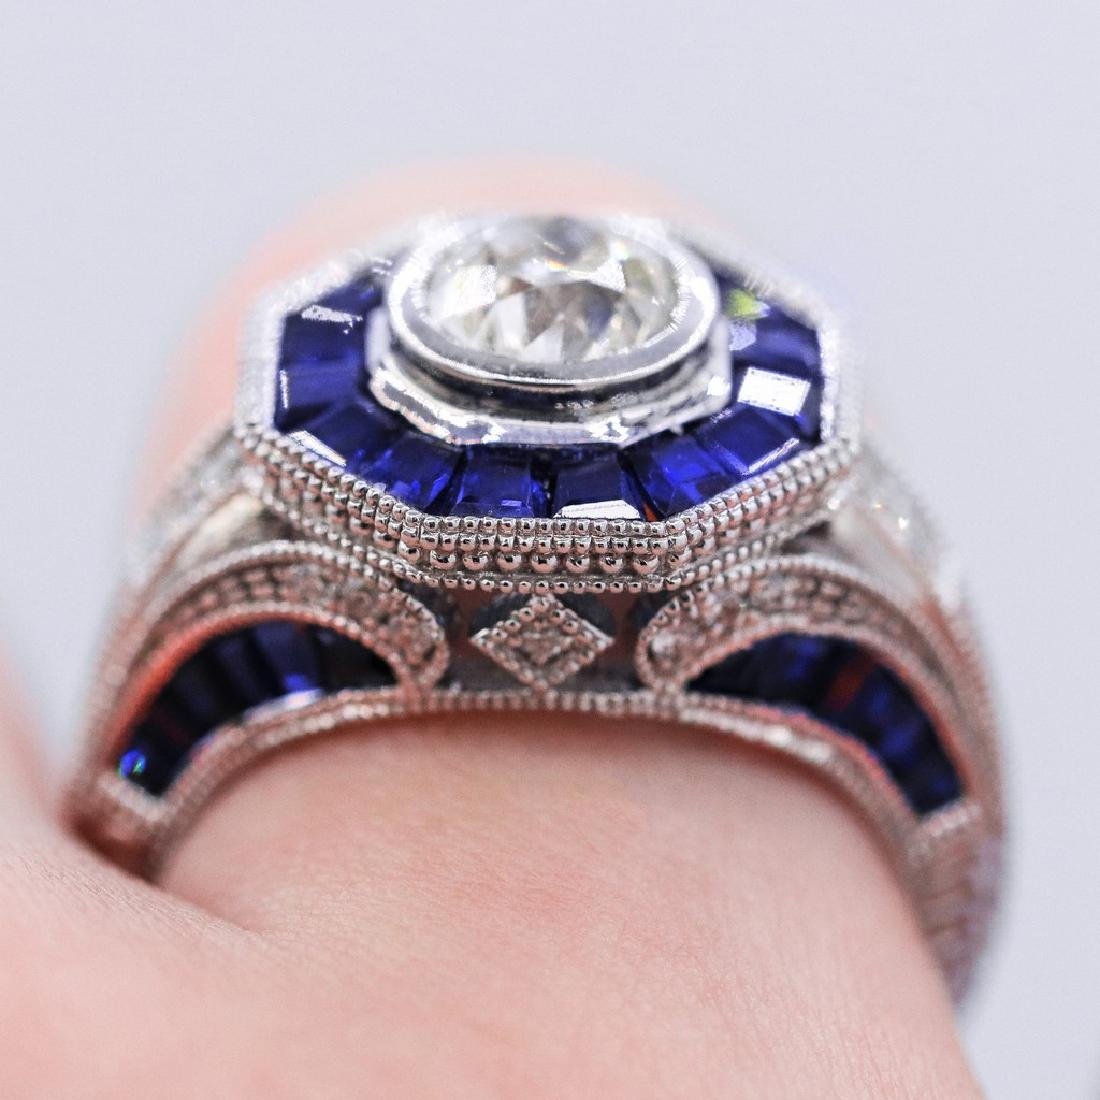 Vintage style diamond ring with 2.28ct of sapphire - 2